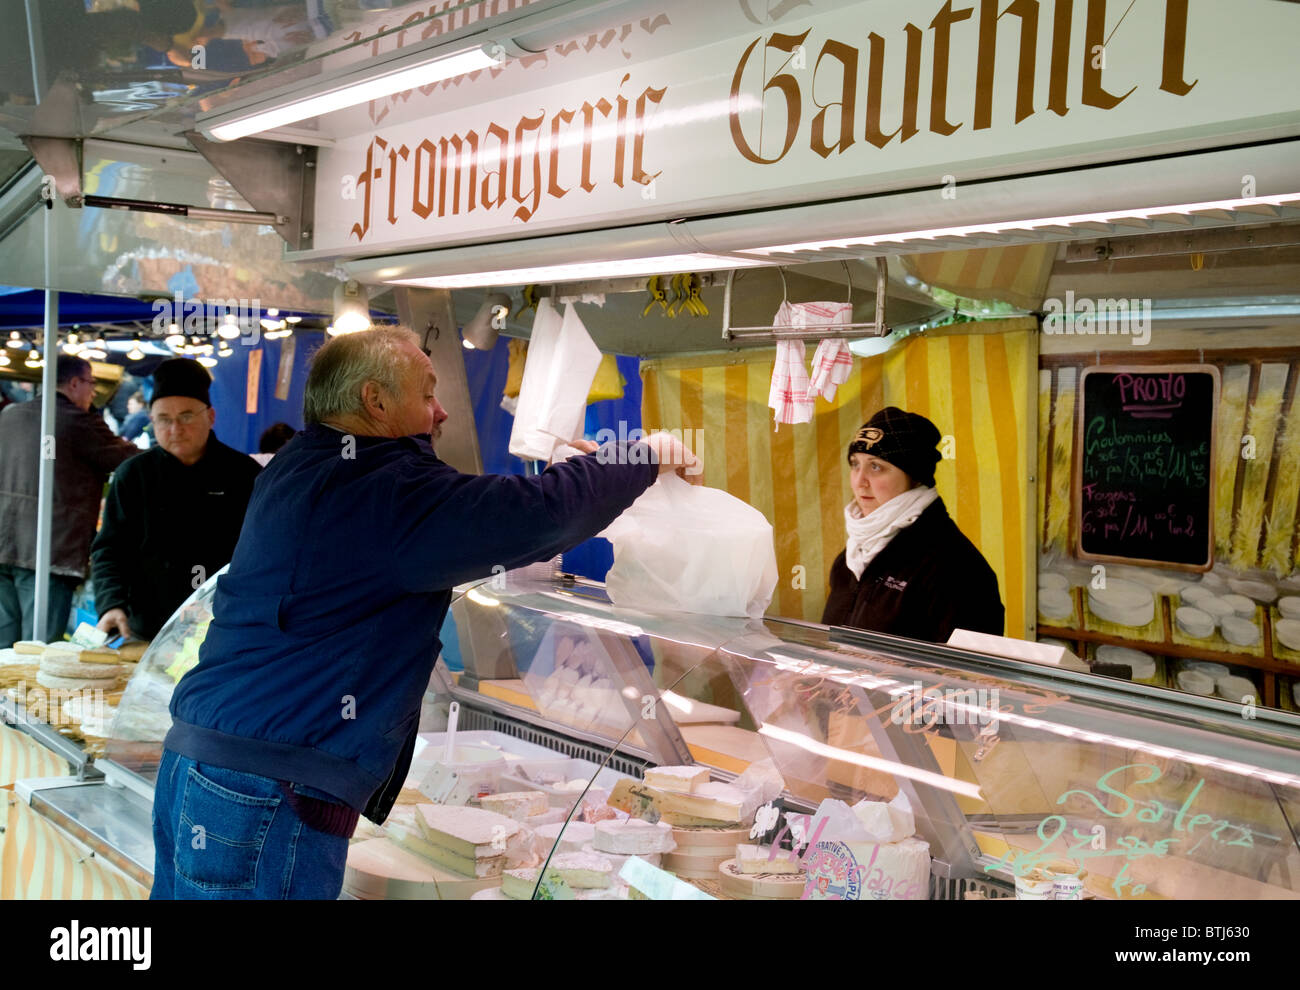 shopping for cheese at a Fromagerie (Cheese stall), Coulommiers town street market near Paris,  ile de france France - Stock Image